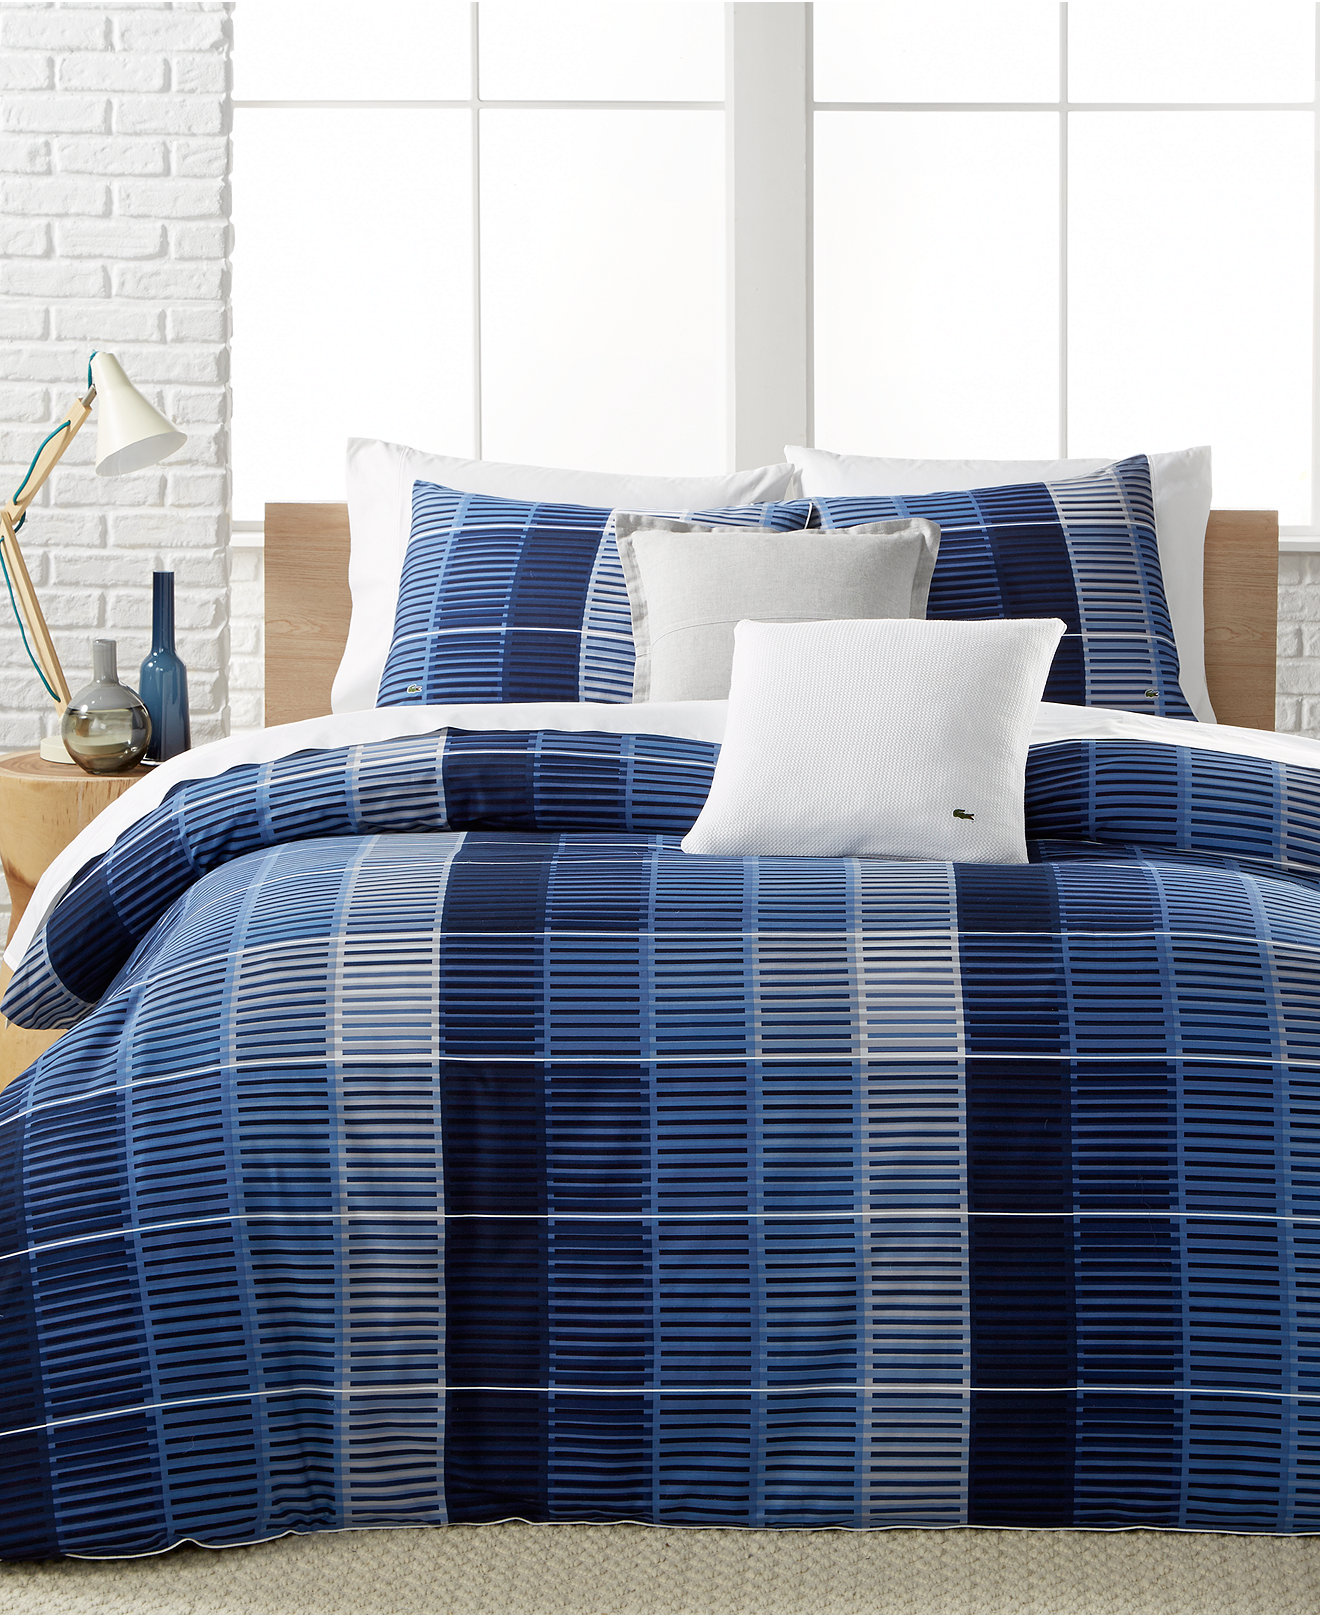 Royal blue bedding queen - Lacoste Home Blue Albe Bedding Collection